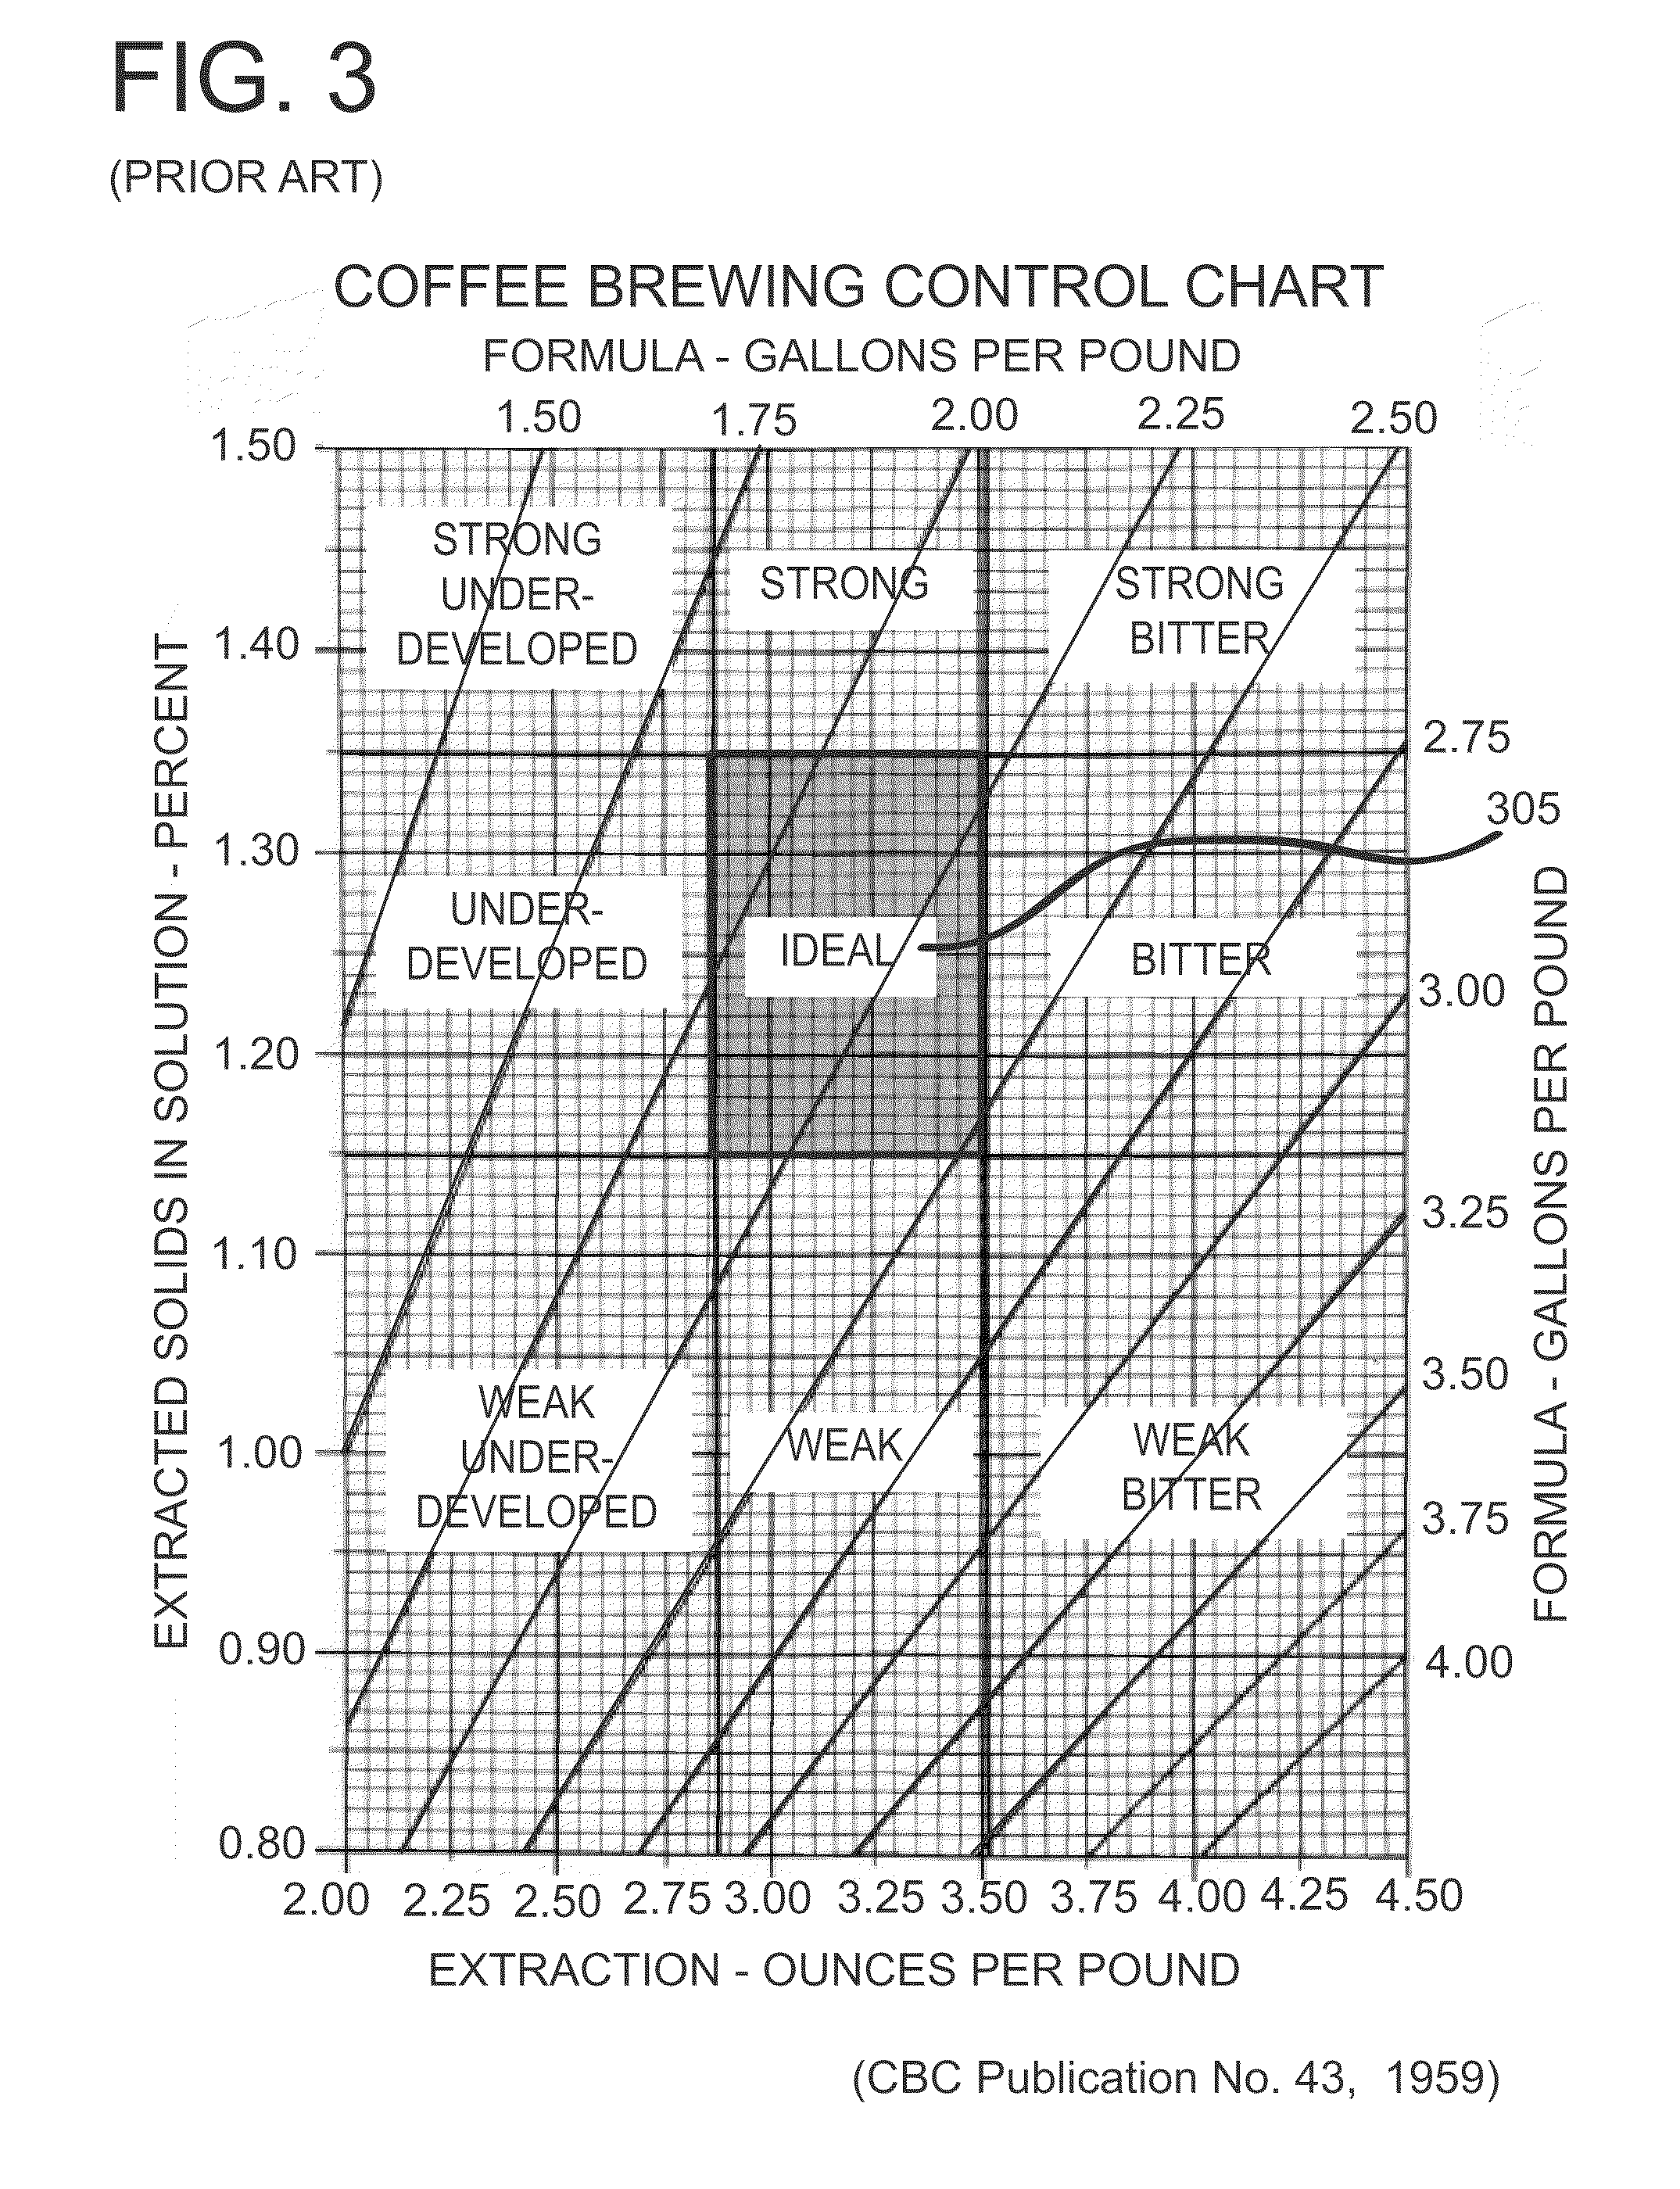 Cbc 801 1 Wiring Diagram 24 Images Nissan B13 Us20100085560a1 20100408 D00003 Patent Us20100085560 Coffee Refractometer Method And Apparatus At